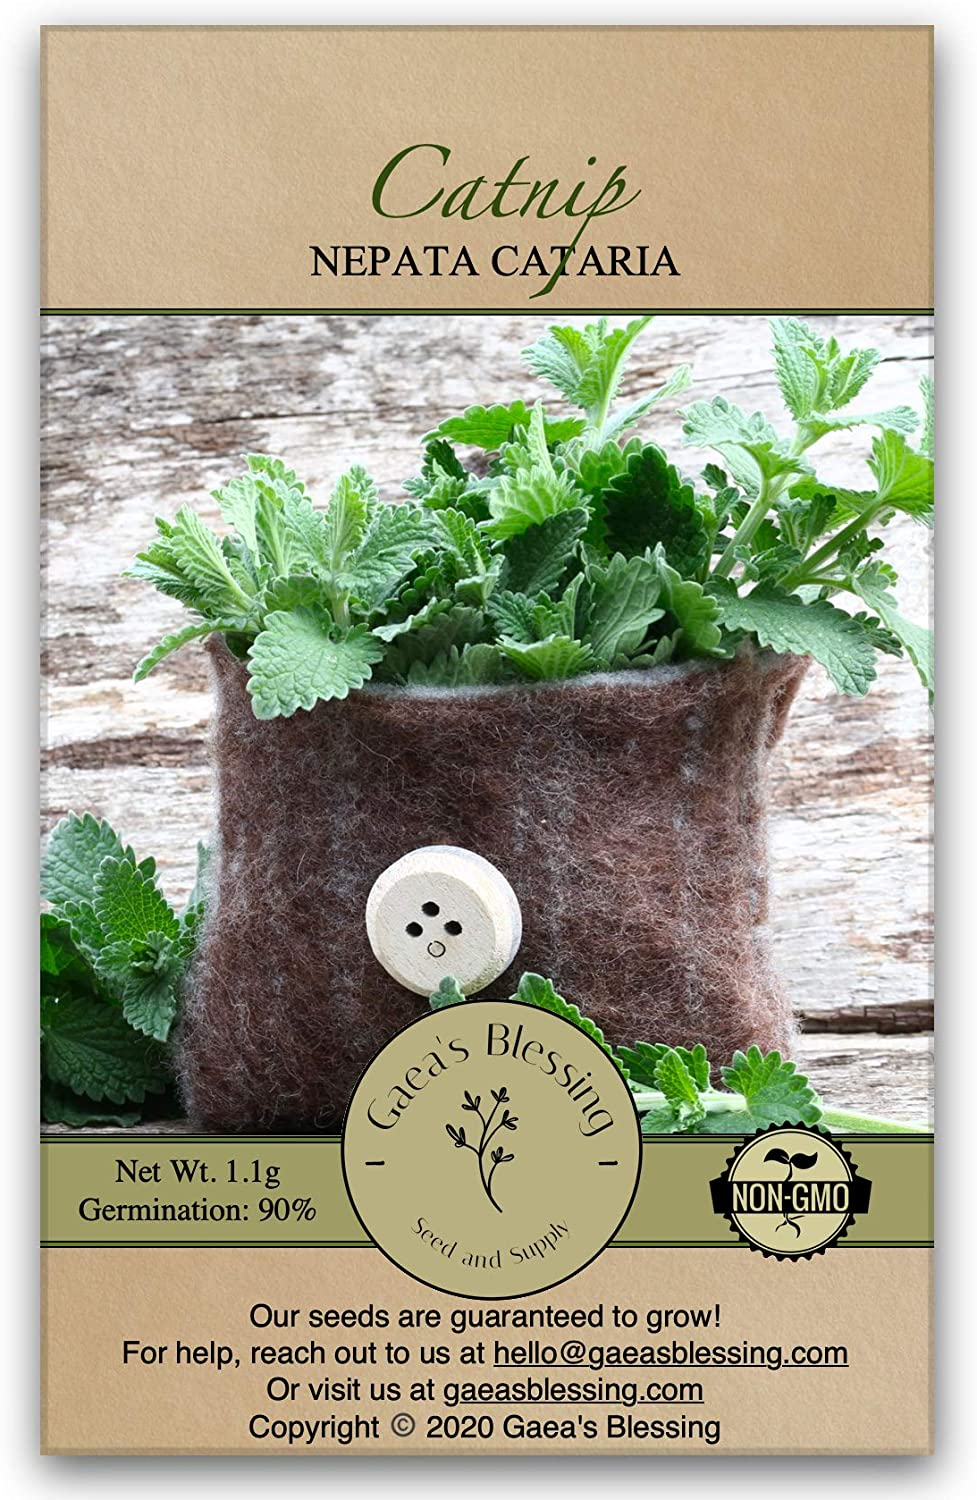 Gaea's Blessing Seeds - low-pricing Non-GMO Heirloom Max 41% OFF Catnip Ne